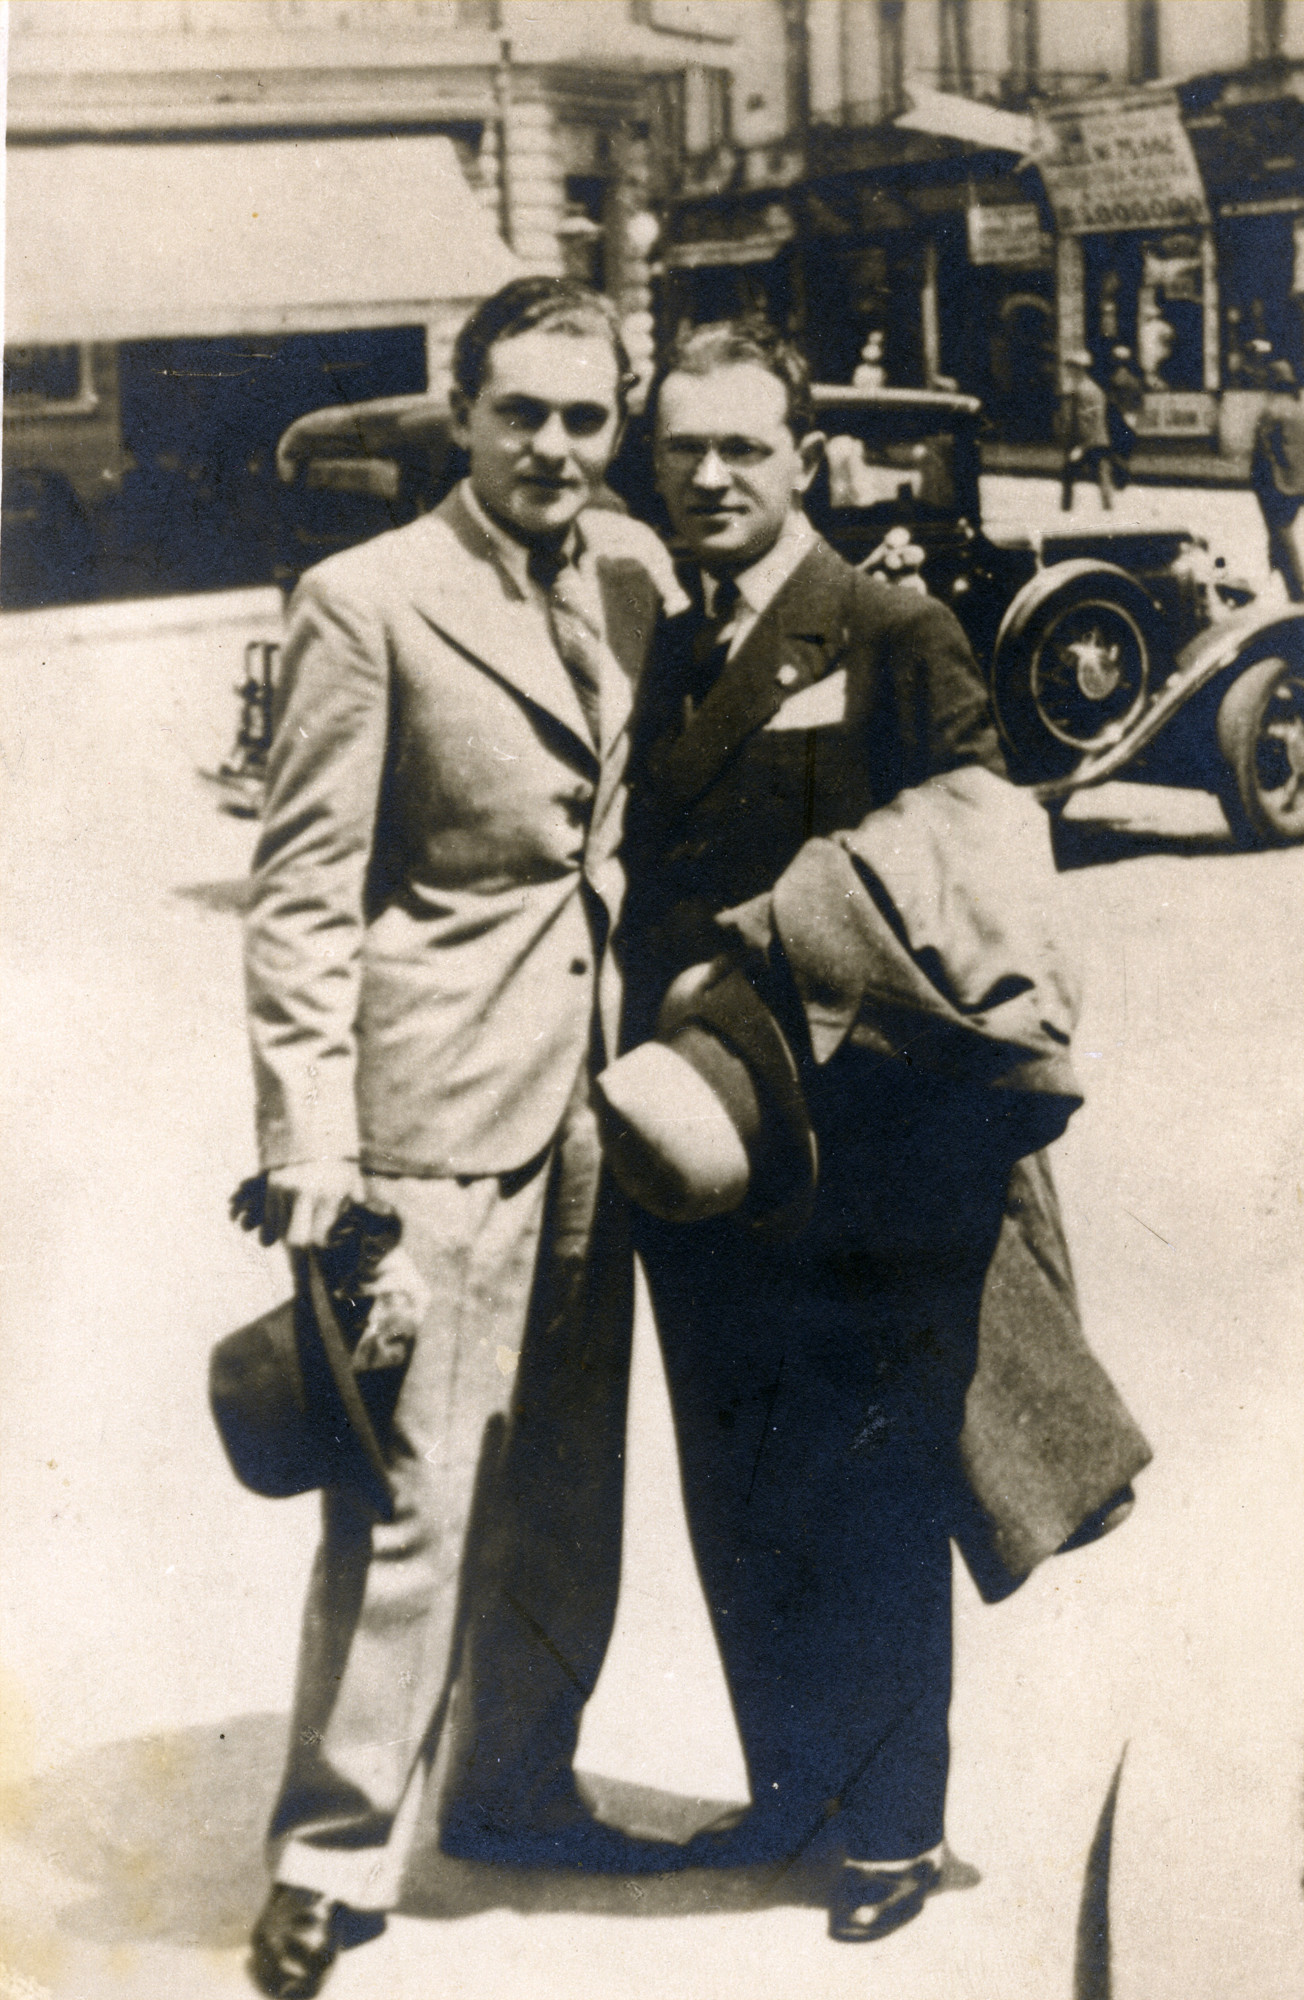 Jewish Romanian brothers pose together on the street in Bucharest.    Pictured are Marcel and Neumann Josef.